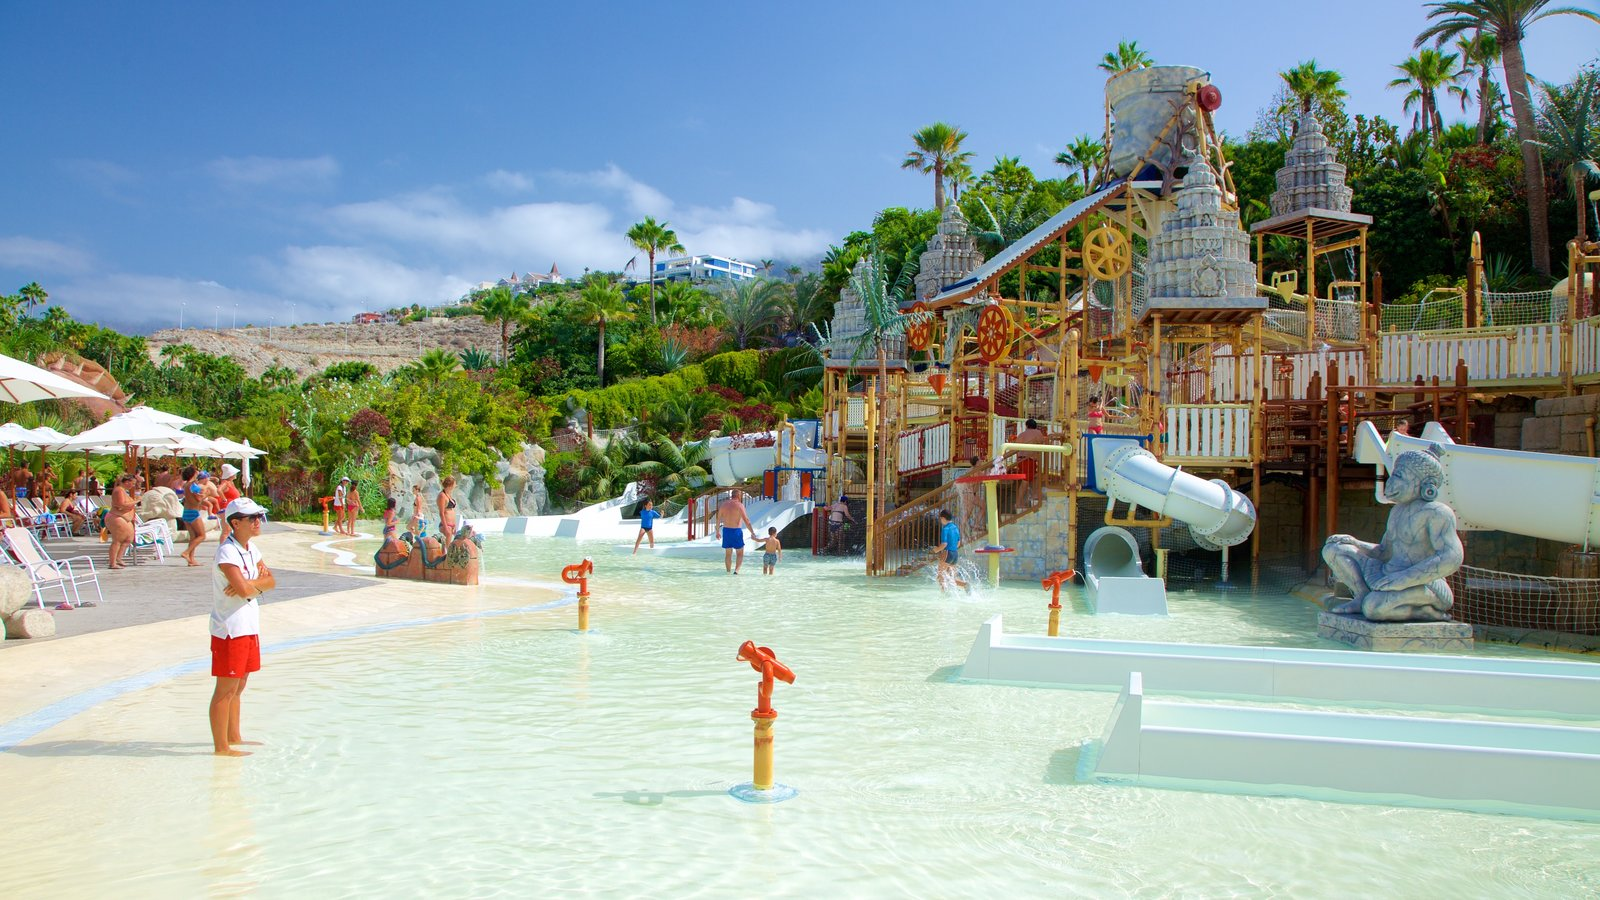 theme parks pictures view images of spain